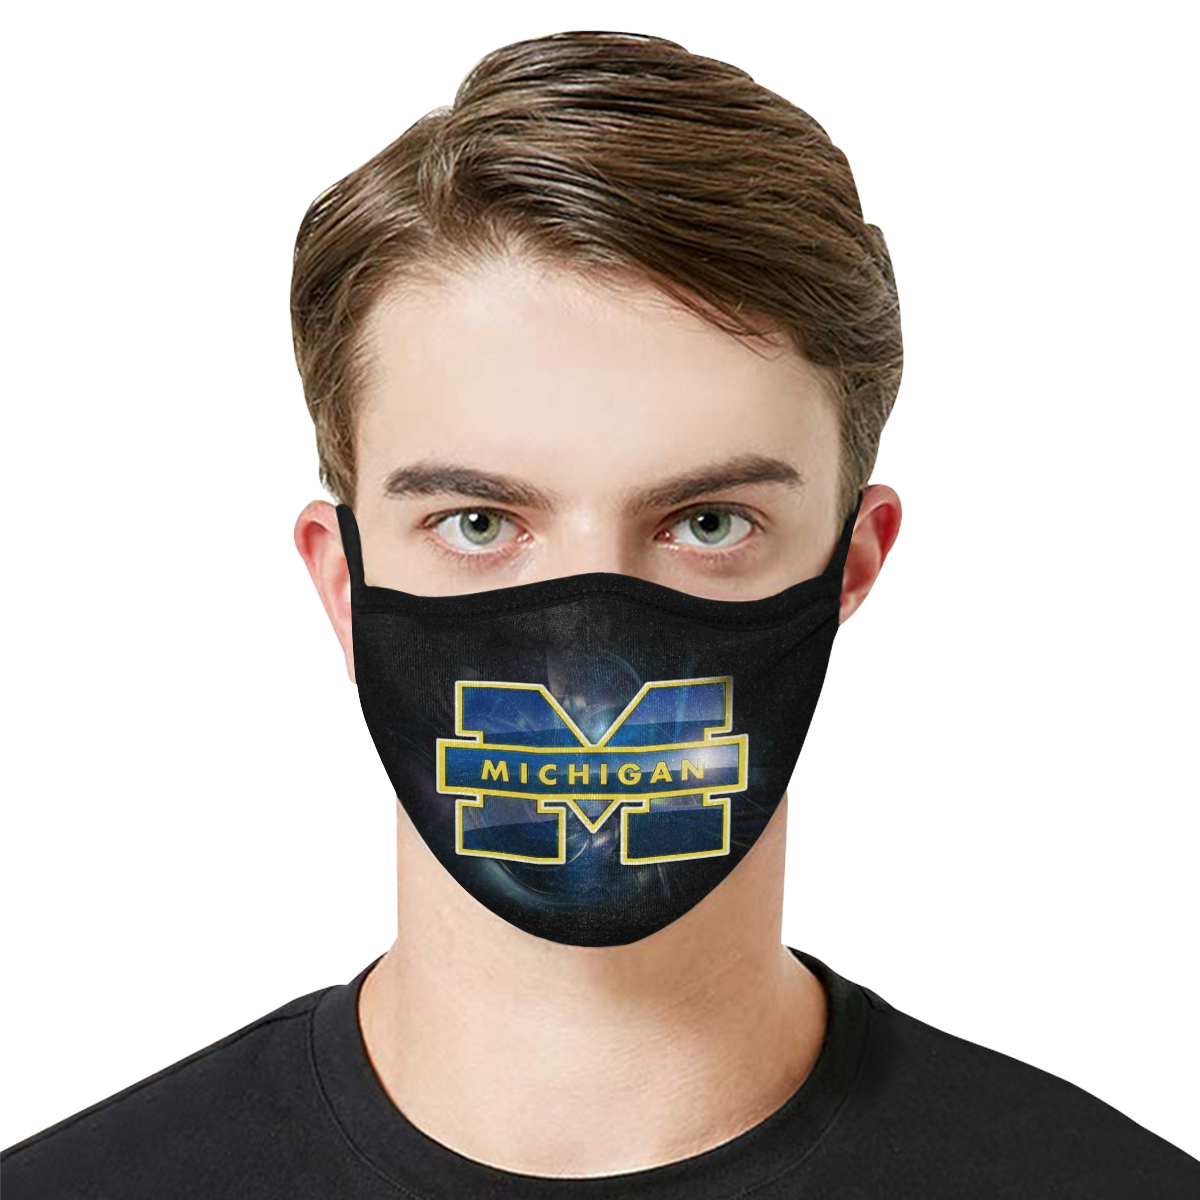 National football league michigan wolverines cotton face mask 2